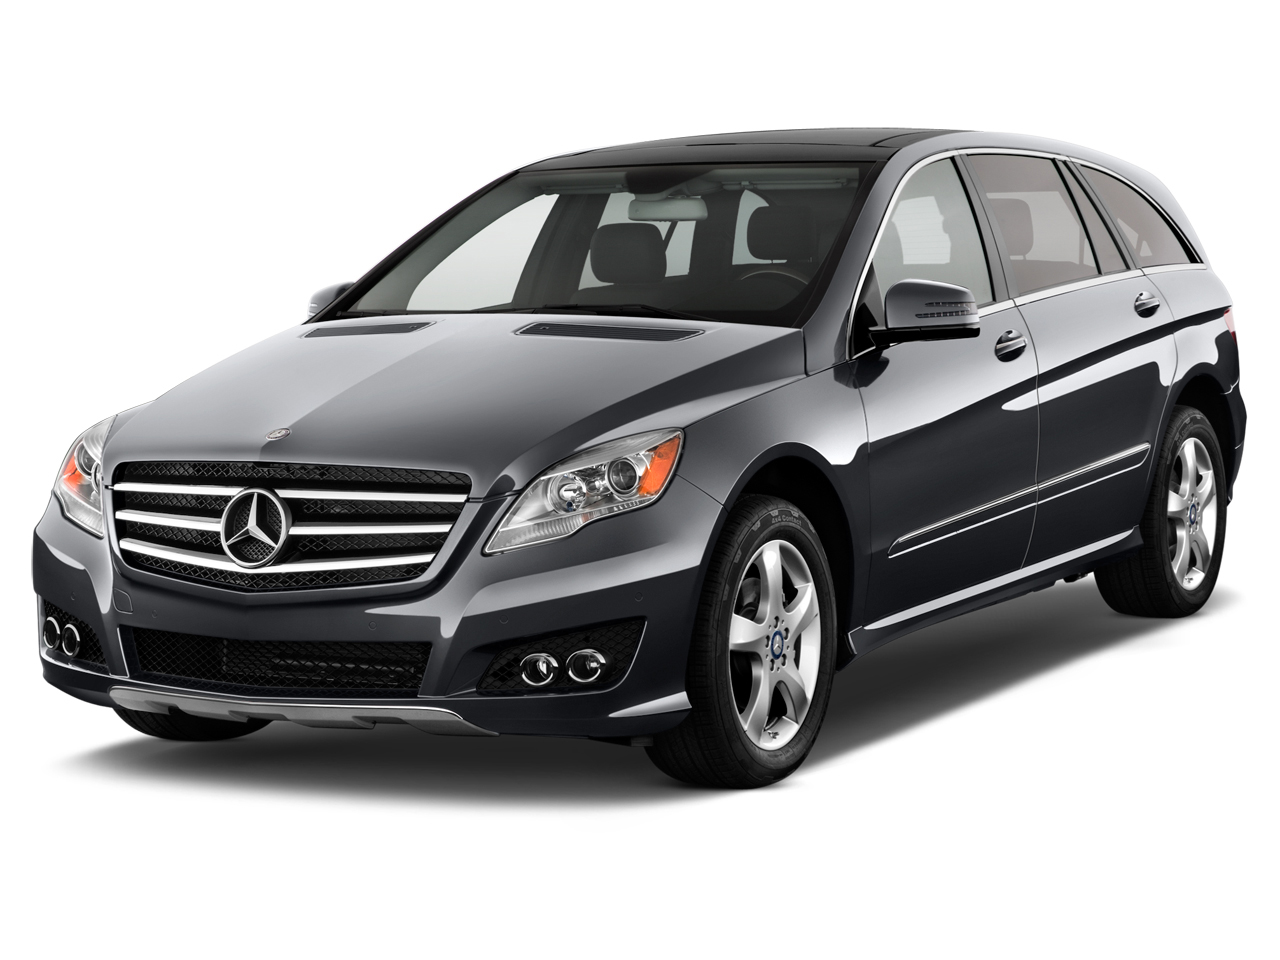 2012 mercedes benz r class review ratings specs prices for Mercedes benz r350 price